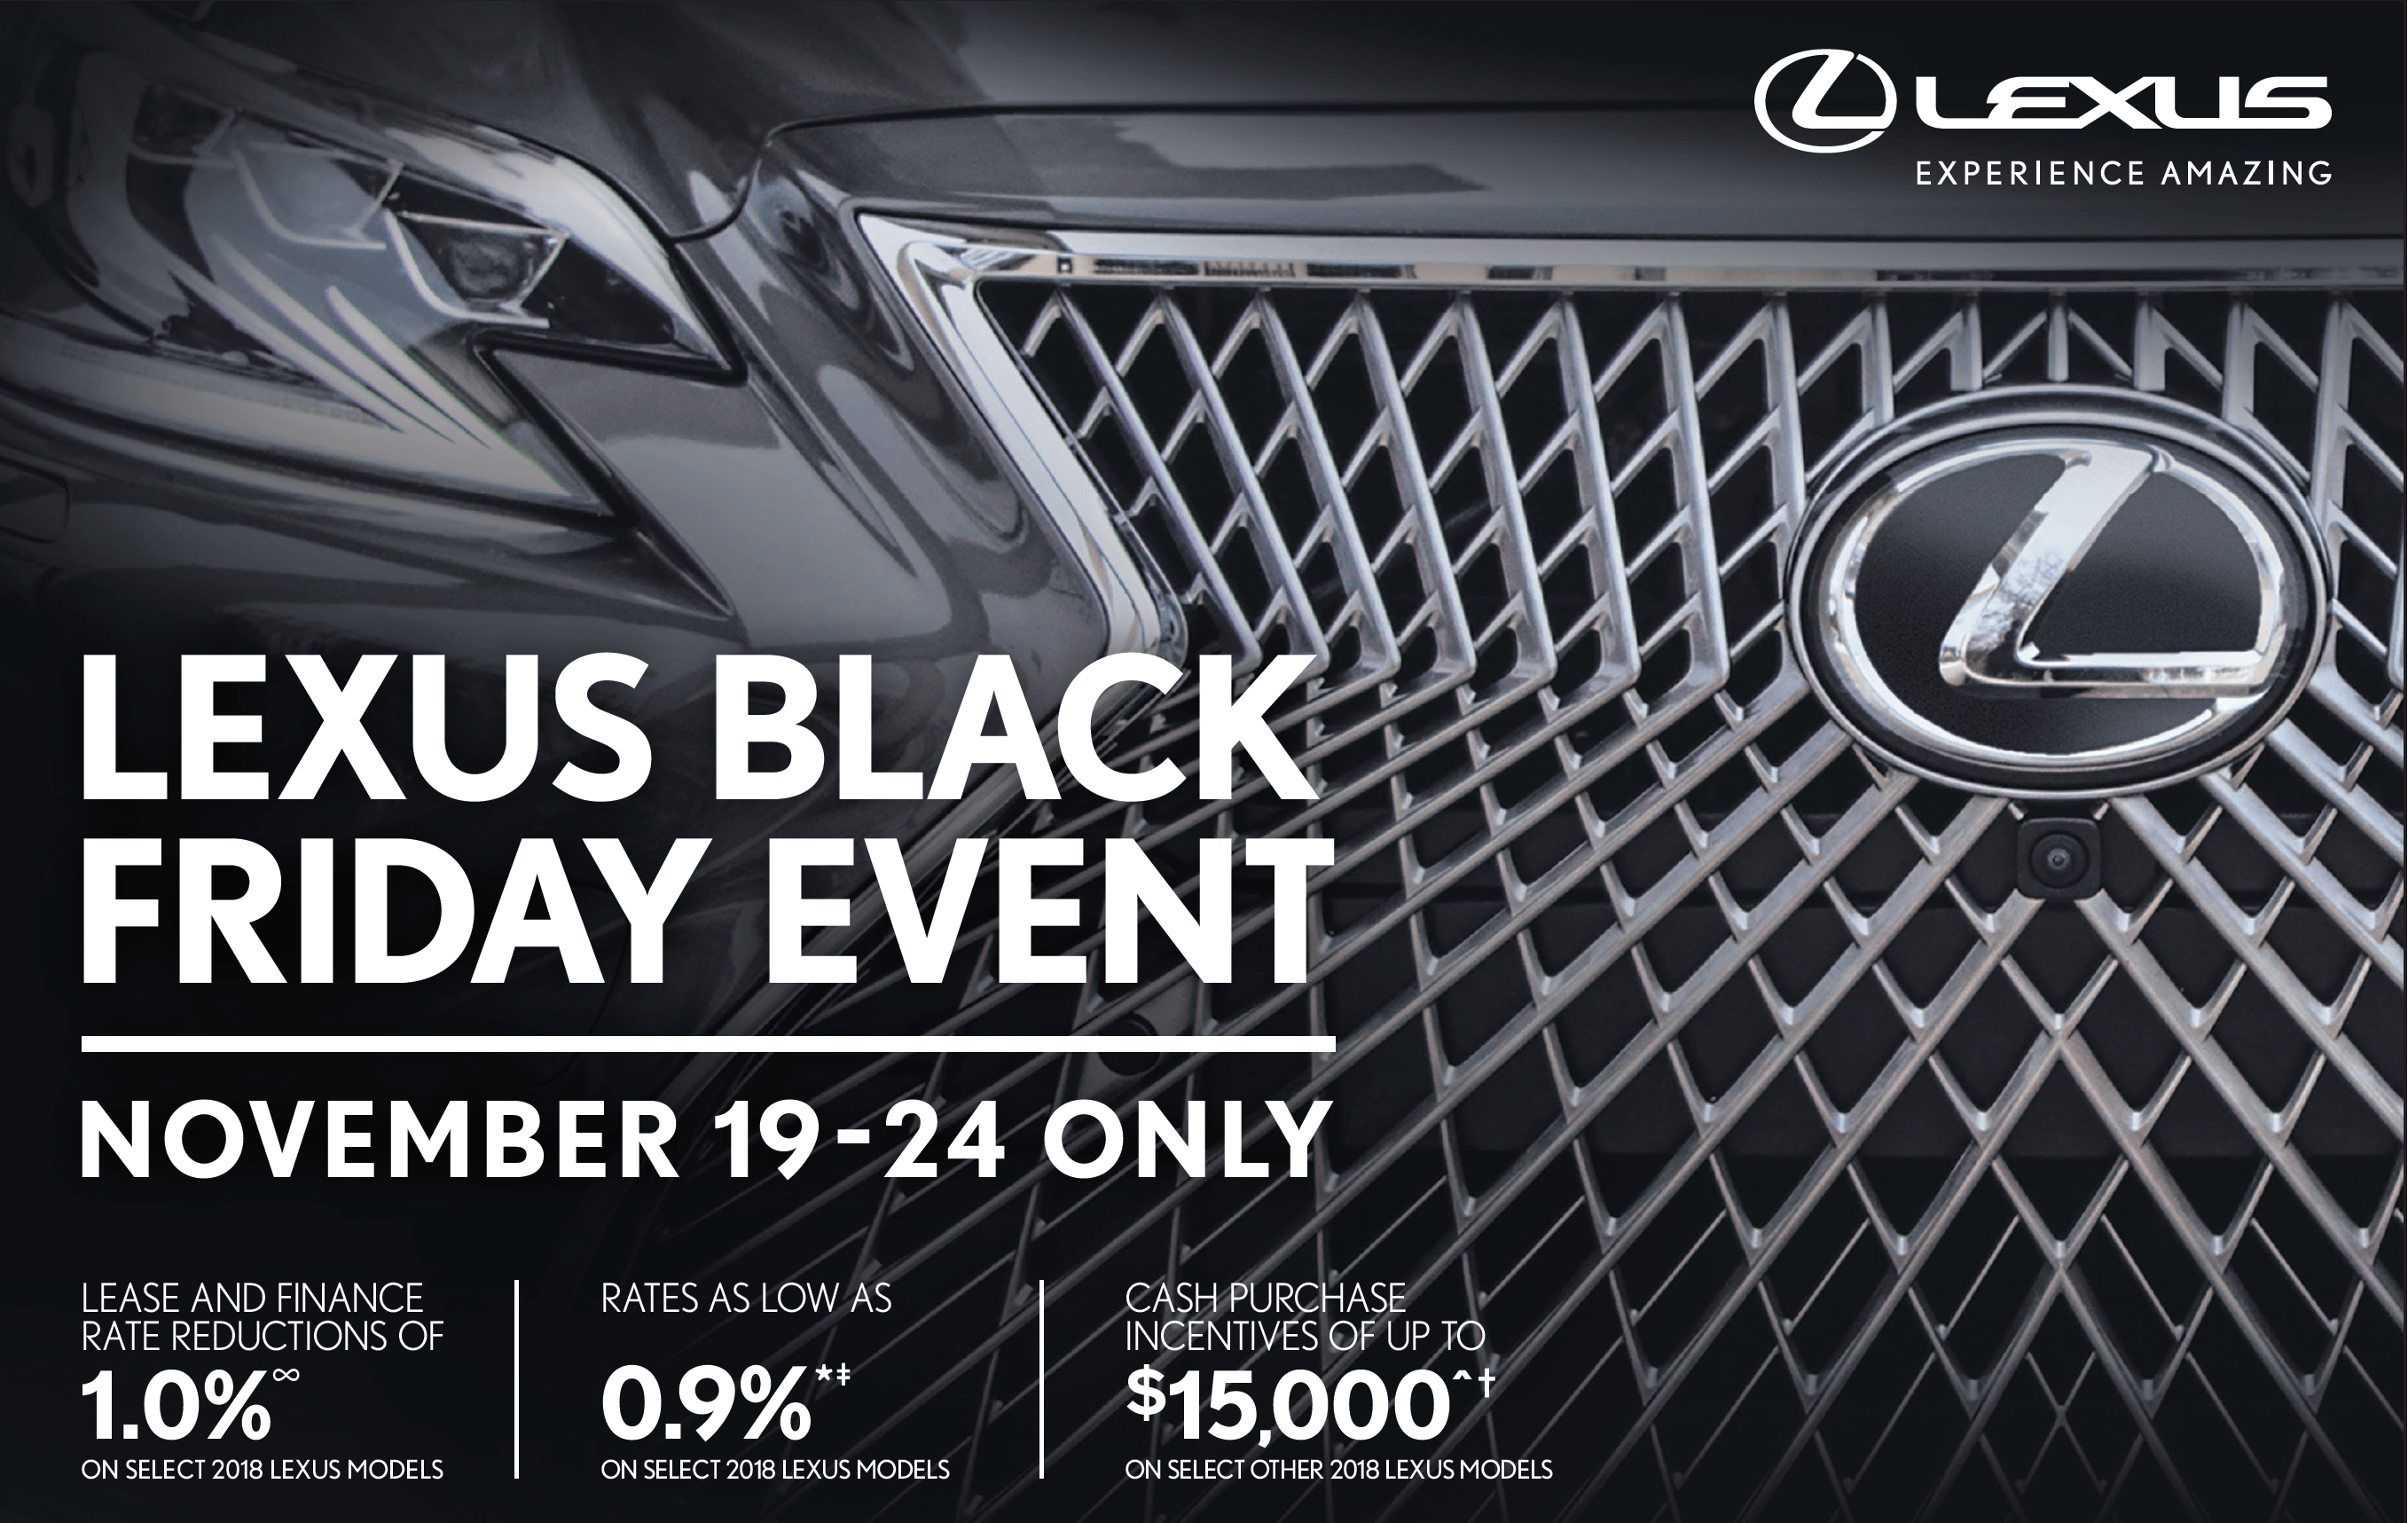 KEN SHAW LEXUS BLACK FRIDAY 2018